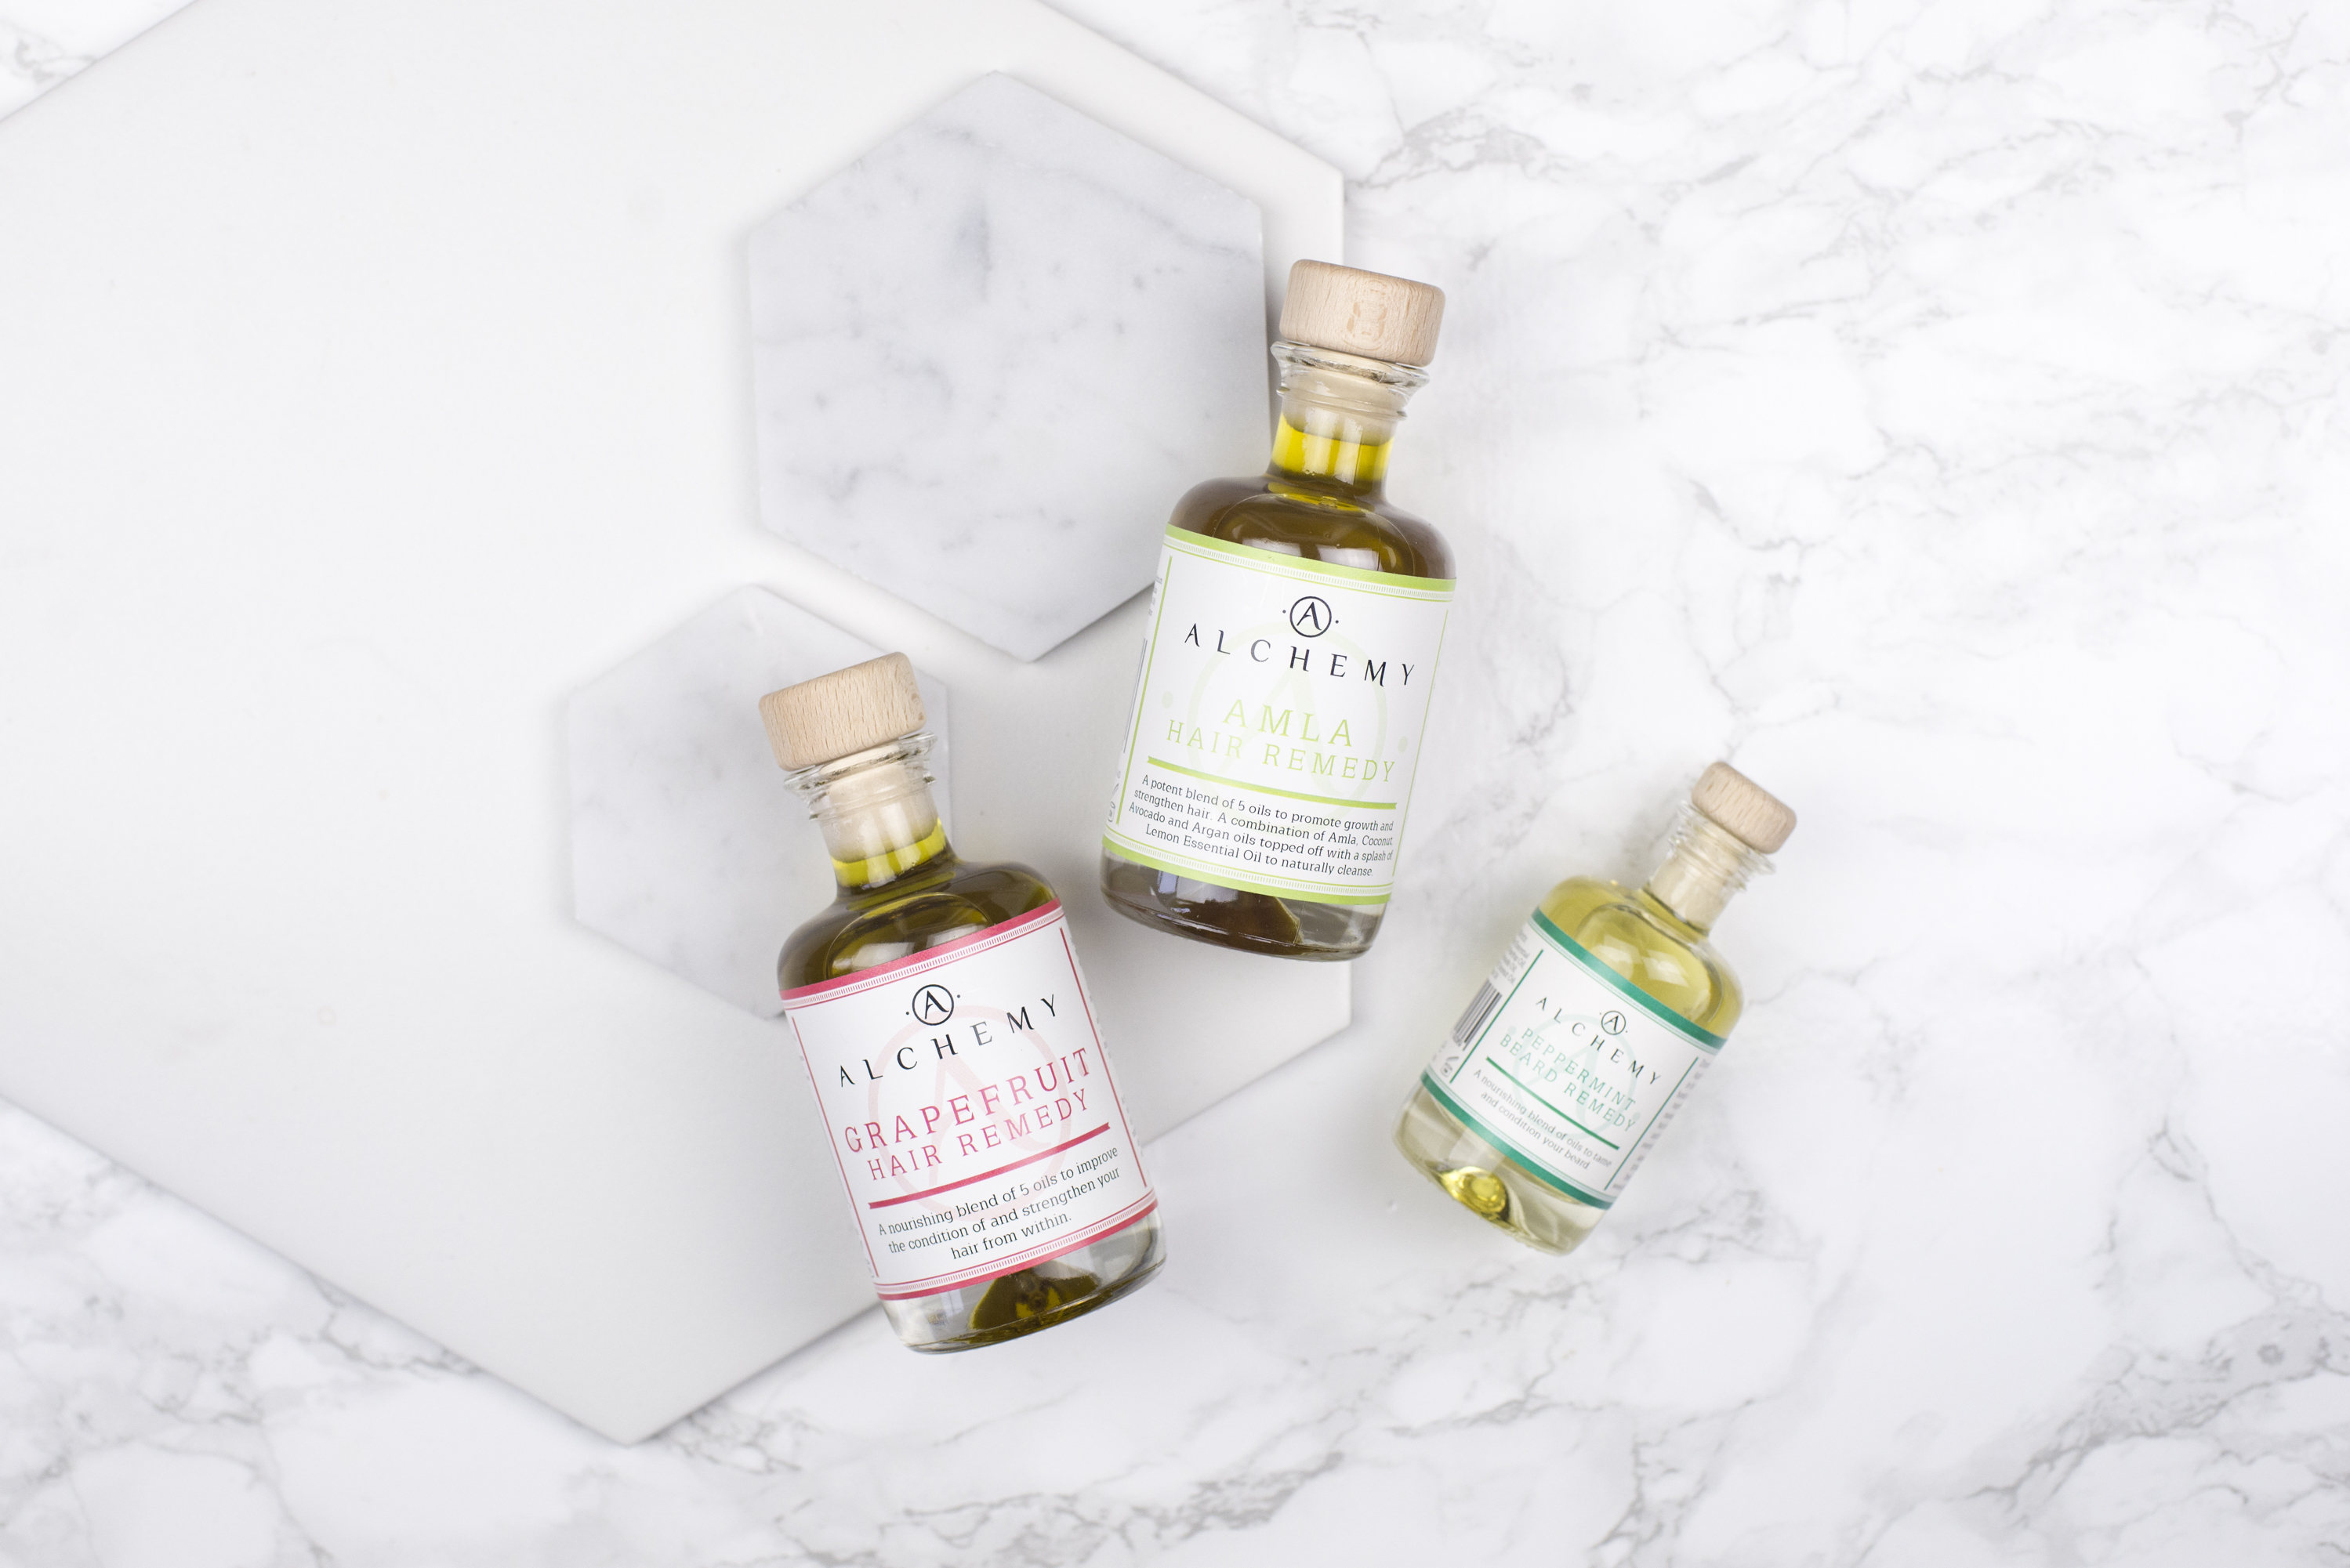 Vegan Beauty Brands To Know About - Hip & Healthy